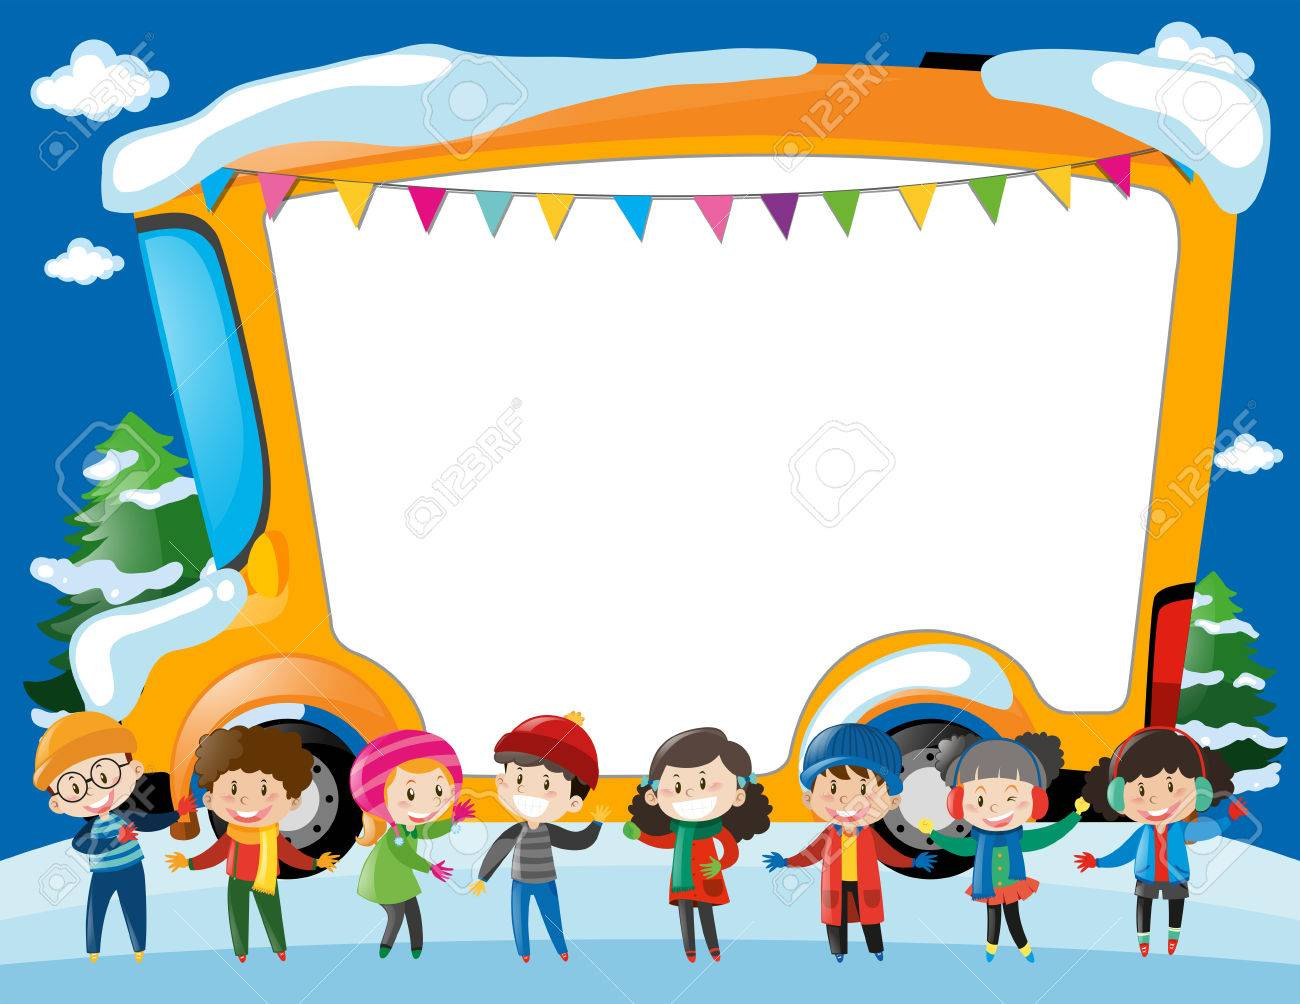 border template with kids and schoolbus illustration royalty free